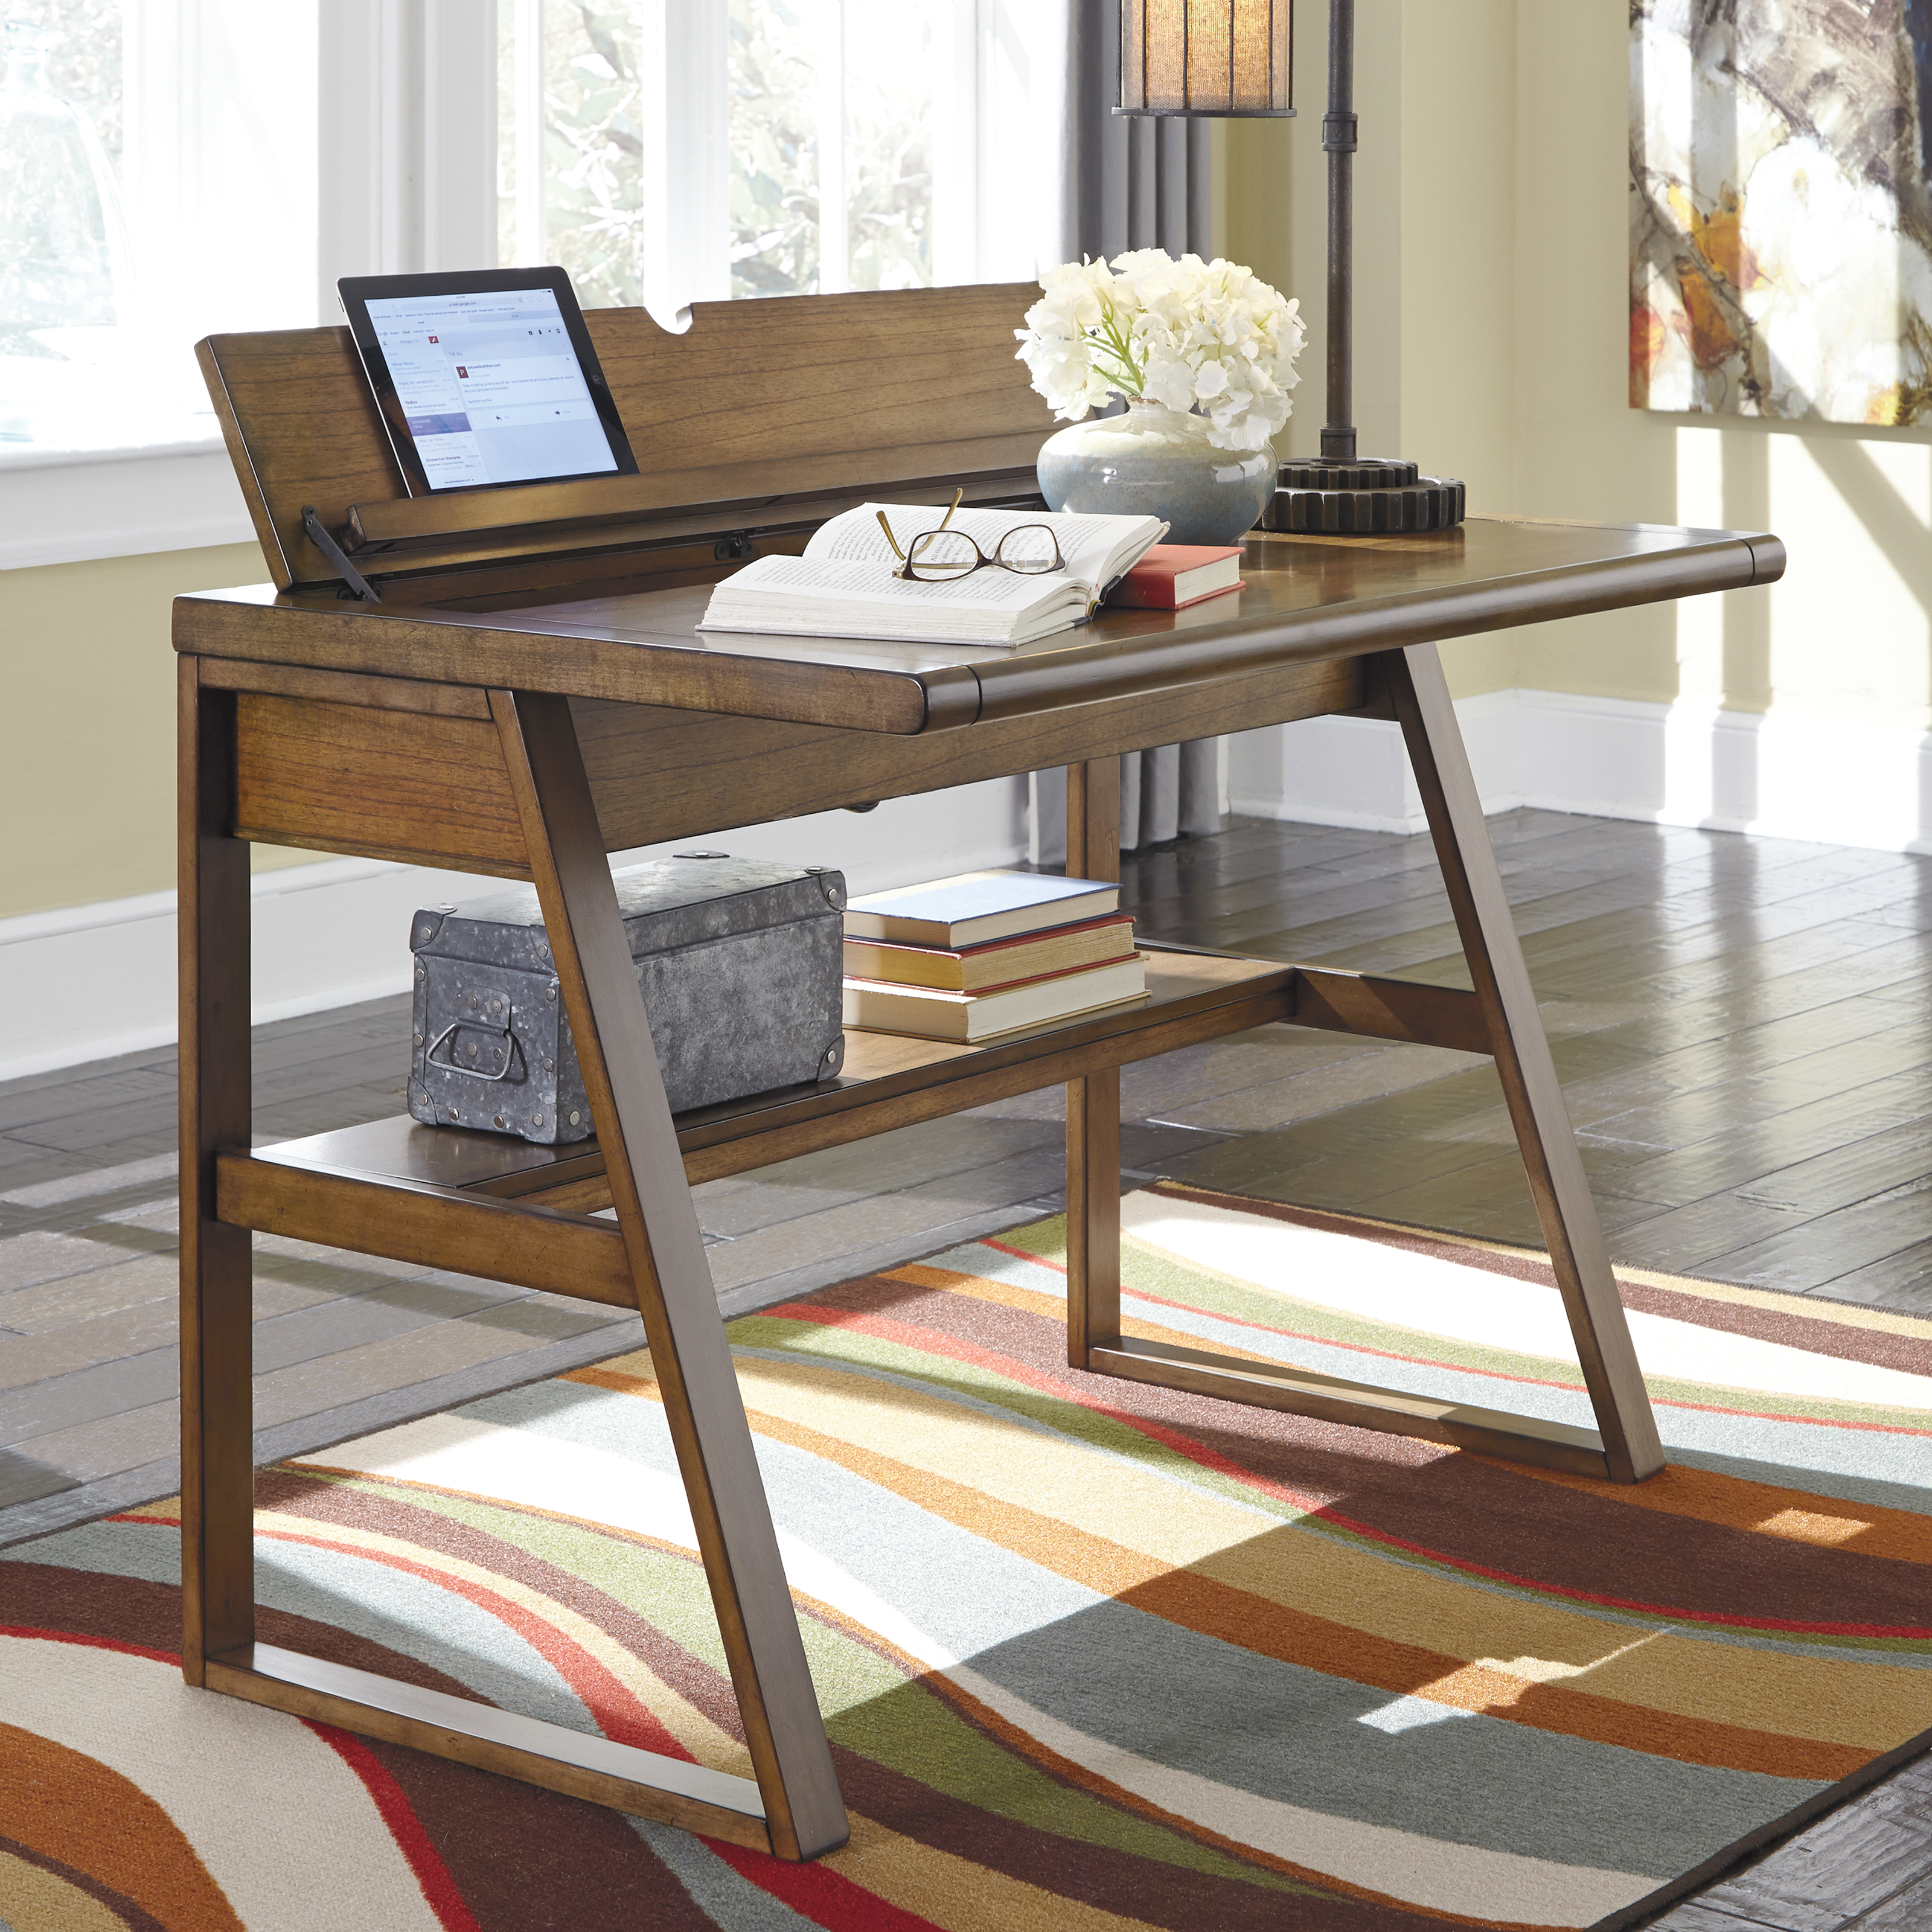 of with puter beautiful tanshire desk pictures home desks modern furniture ideas fresh hutch ashley fice